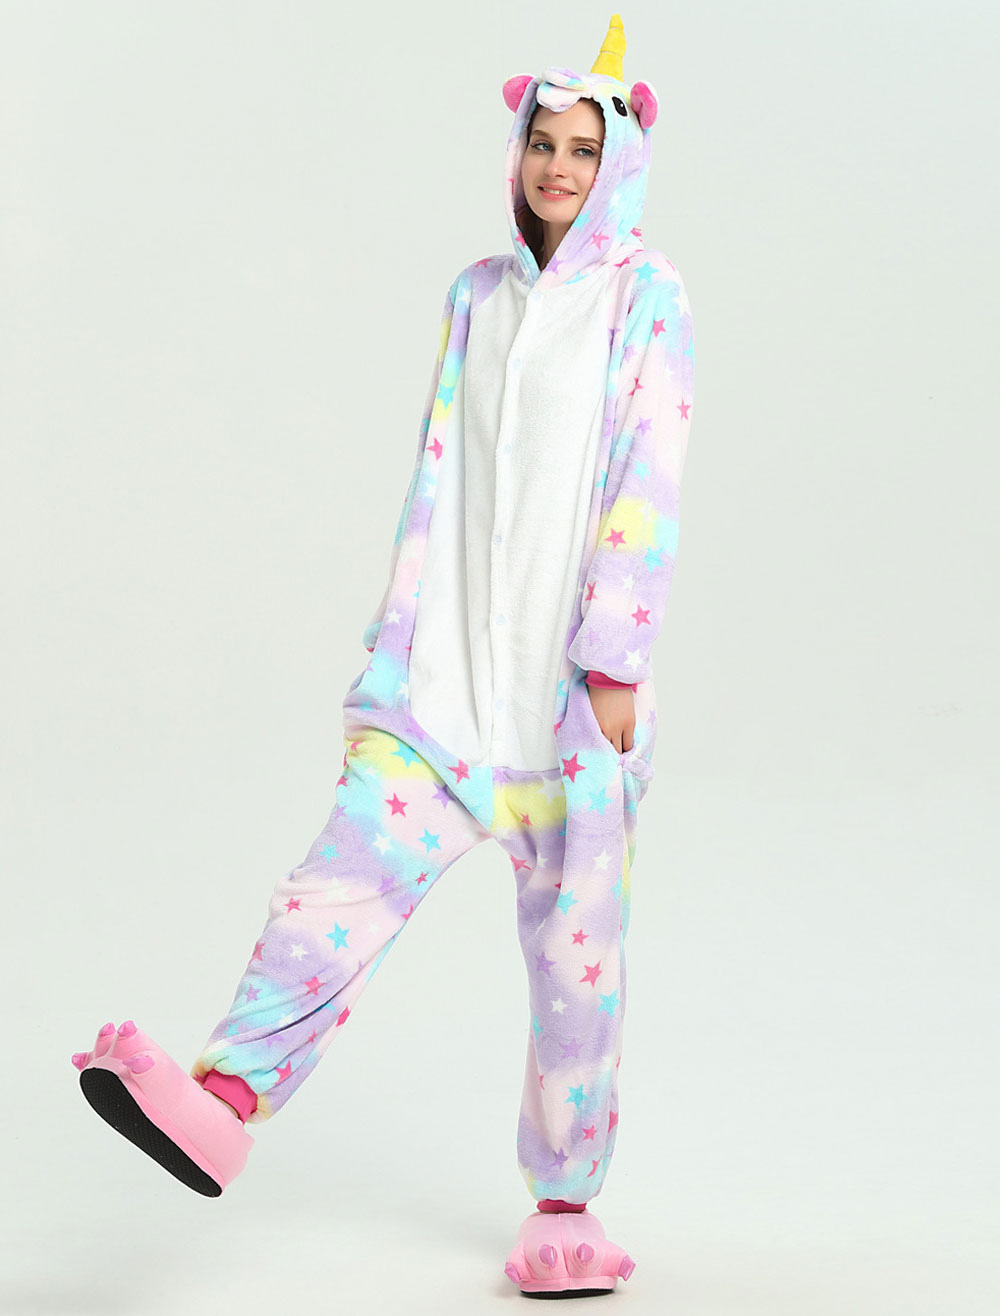 a4f0a6d6d Unicorn Onesie Kigurumi Pajamas Rose Flannel Winter Jumpsuit ...